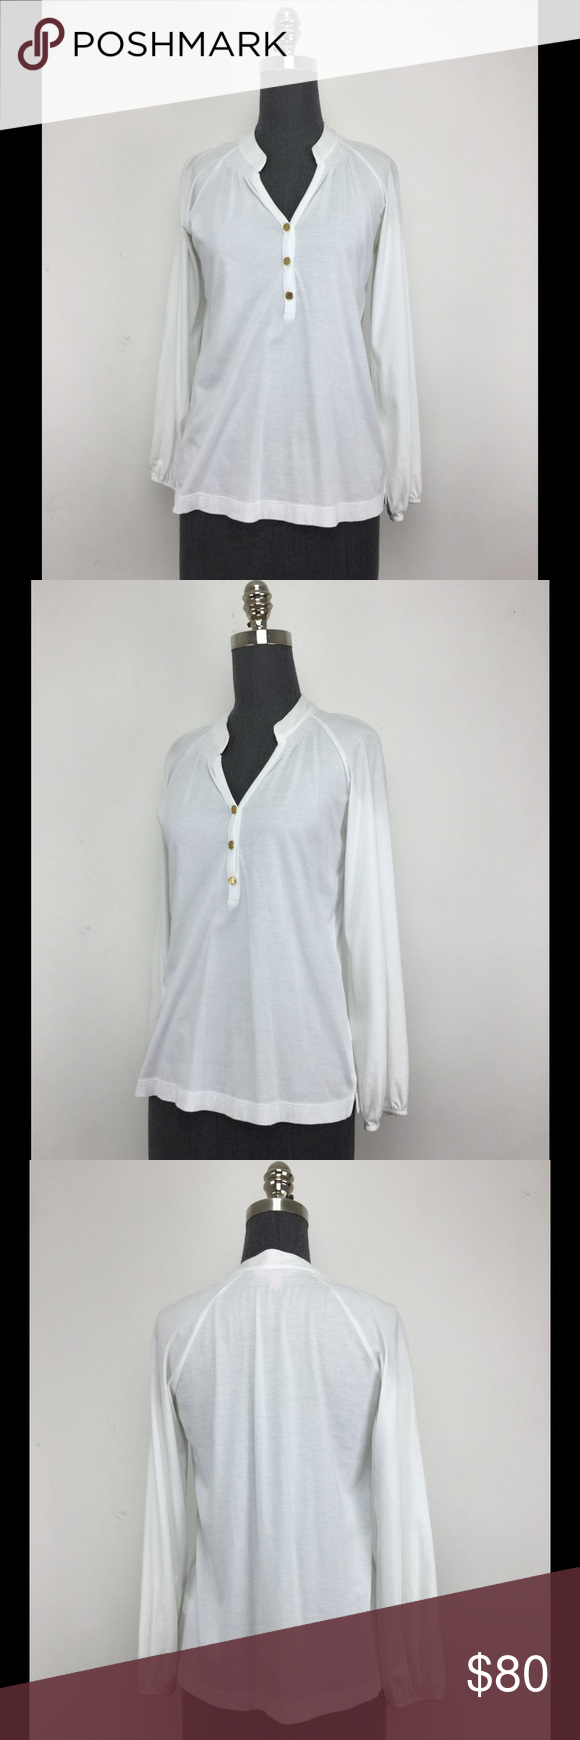 Lilly Pulitzer Mid-button Down Blouse This is a Lilly Pulitzer mid-button down white blouse. Features gold buttons and a cinched neckline. Lilly Pulitzer Tops Blouses